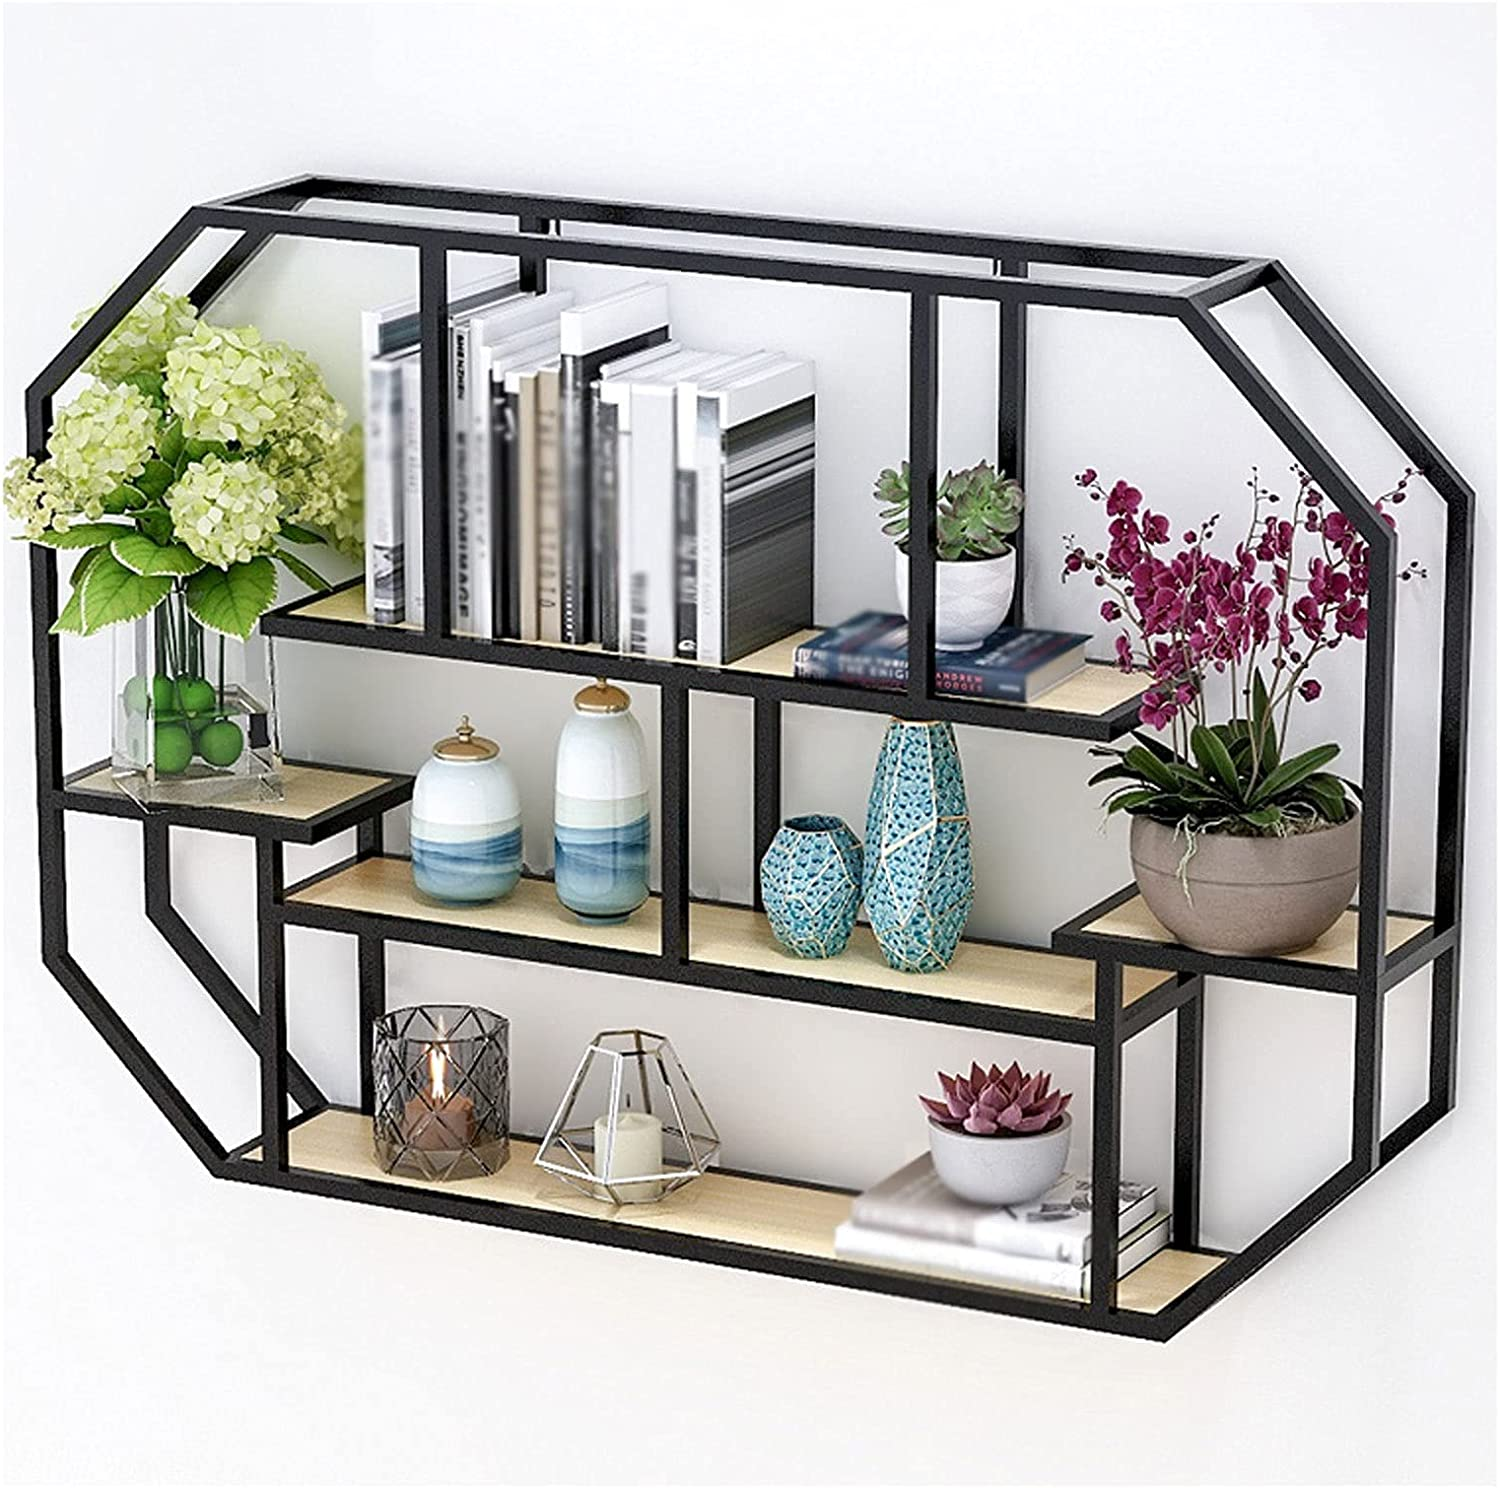 ZYLBDNB Bookcases Metal Heavy Wall-Mounted Bookshelf, Office Multi-Layer Floating Display Rack Bedroom Living Room Bathroom Shelf Storage Rack(Gold/Black) Bookcases and Book Shelves (Color : Black)